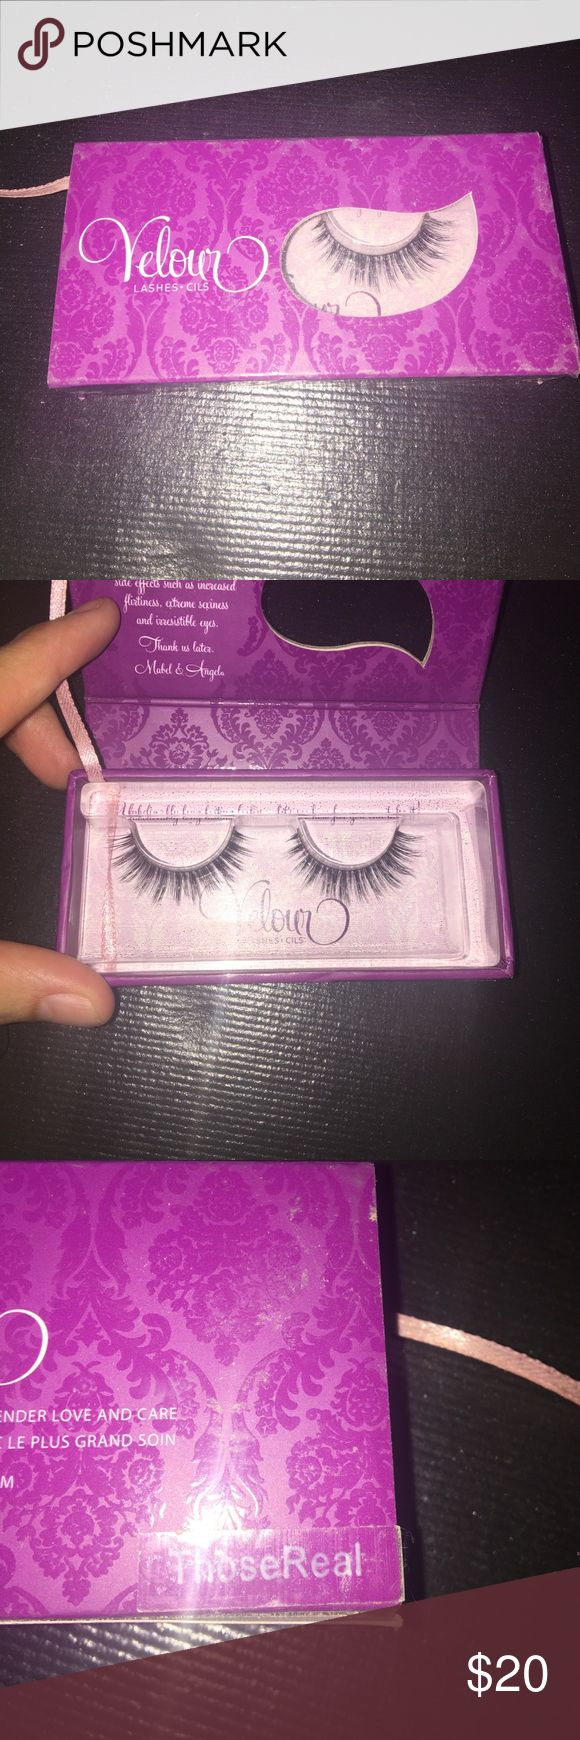 Brand new Velour lashes in THOSE REAL! Never been worn.. Still in box! THOSE REAL! Shoot me an offer! Velour Lashes Makeup False Eyelashes